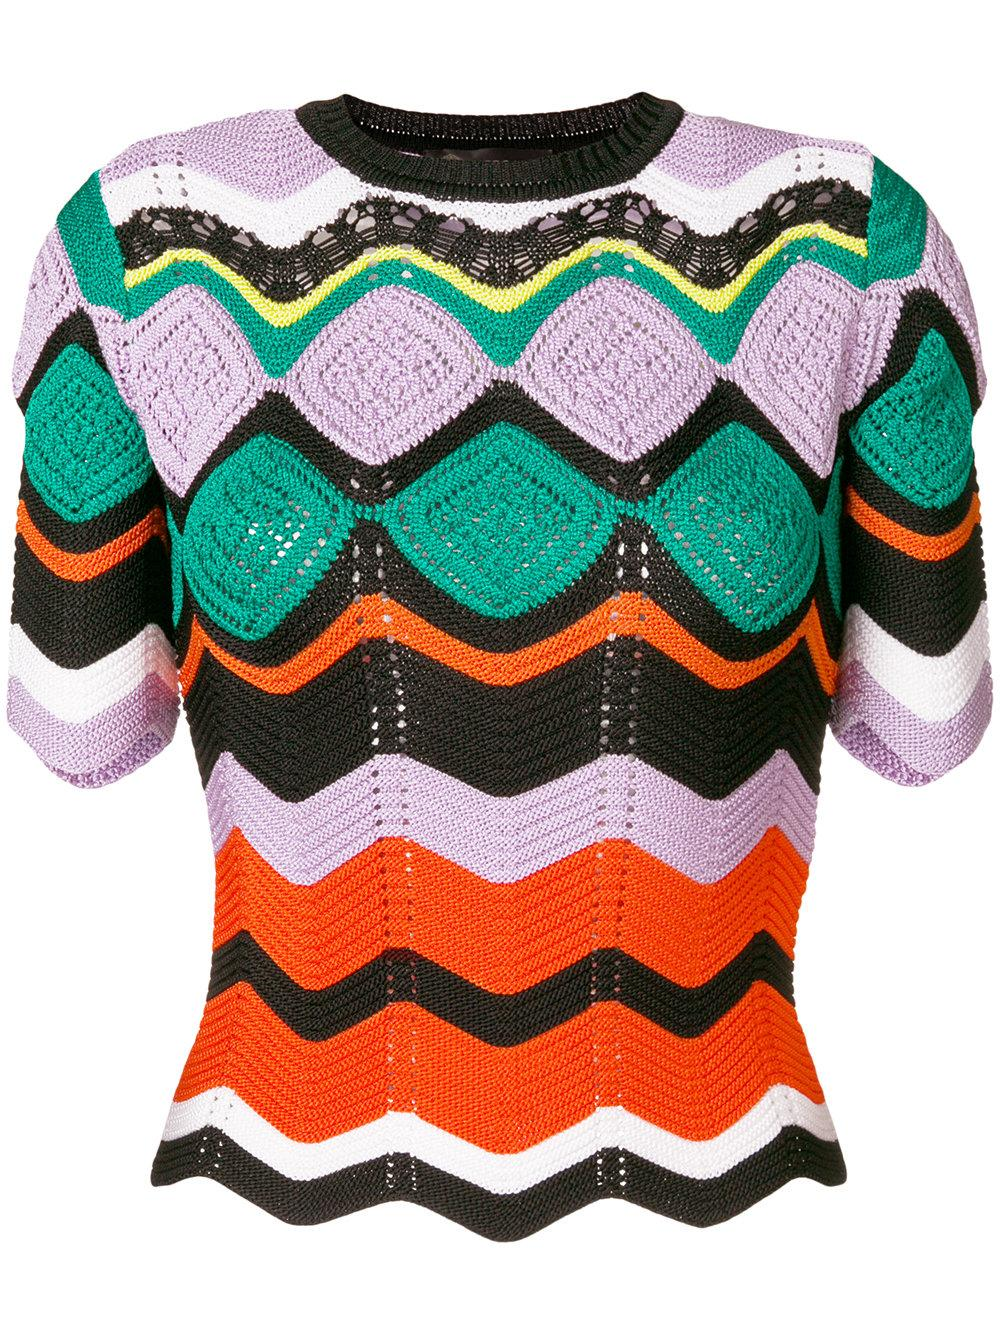 Versace Crochet Knit Jumper